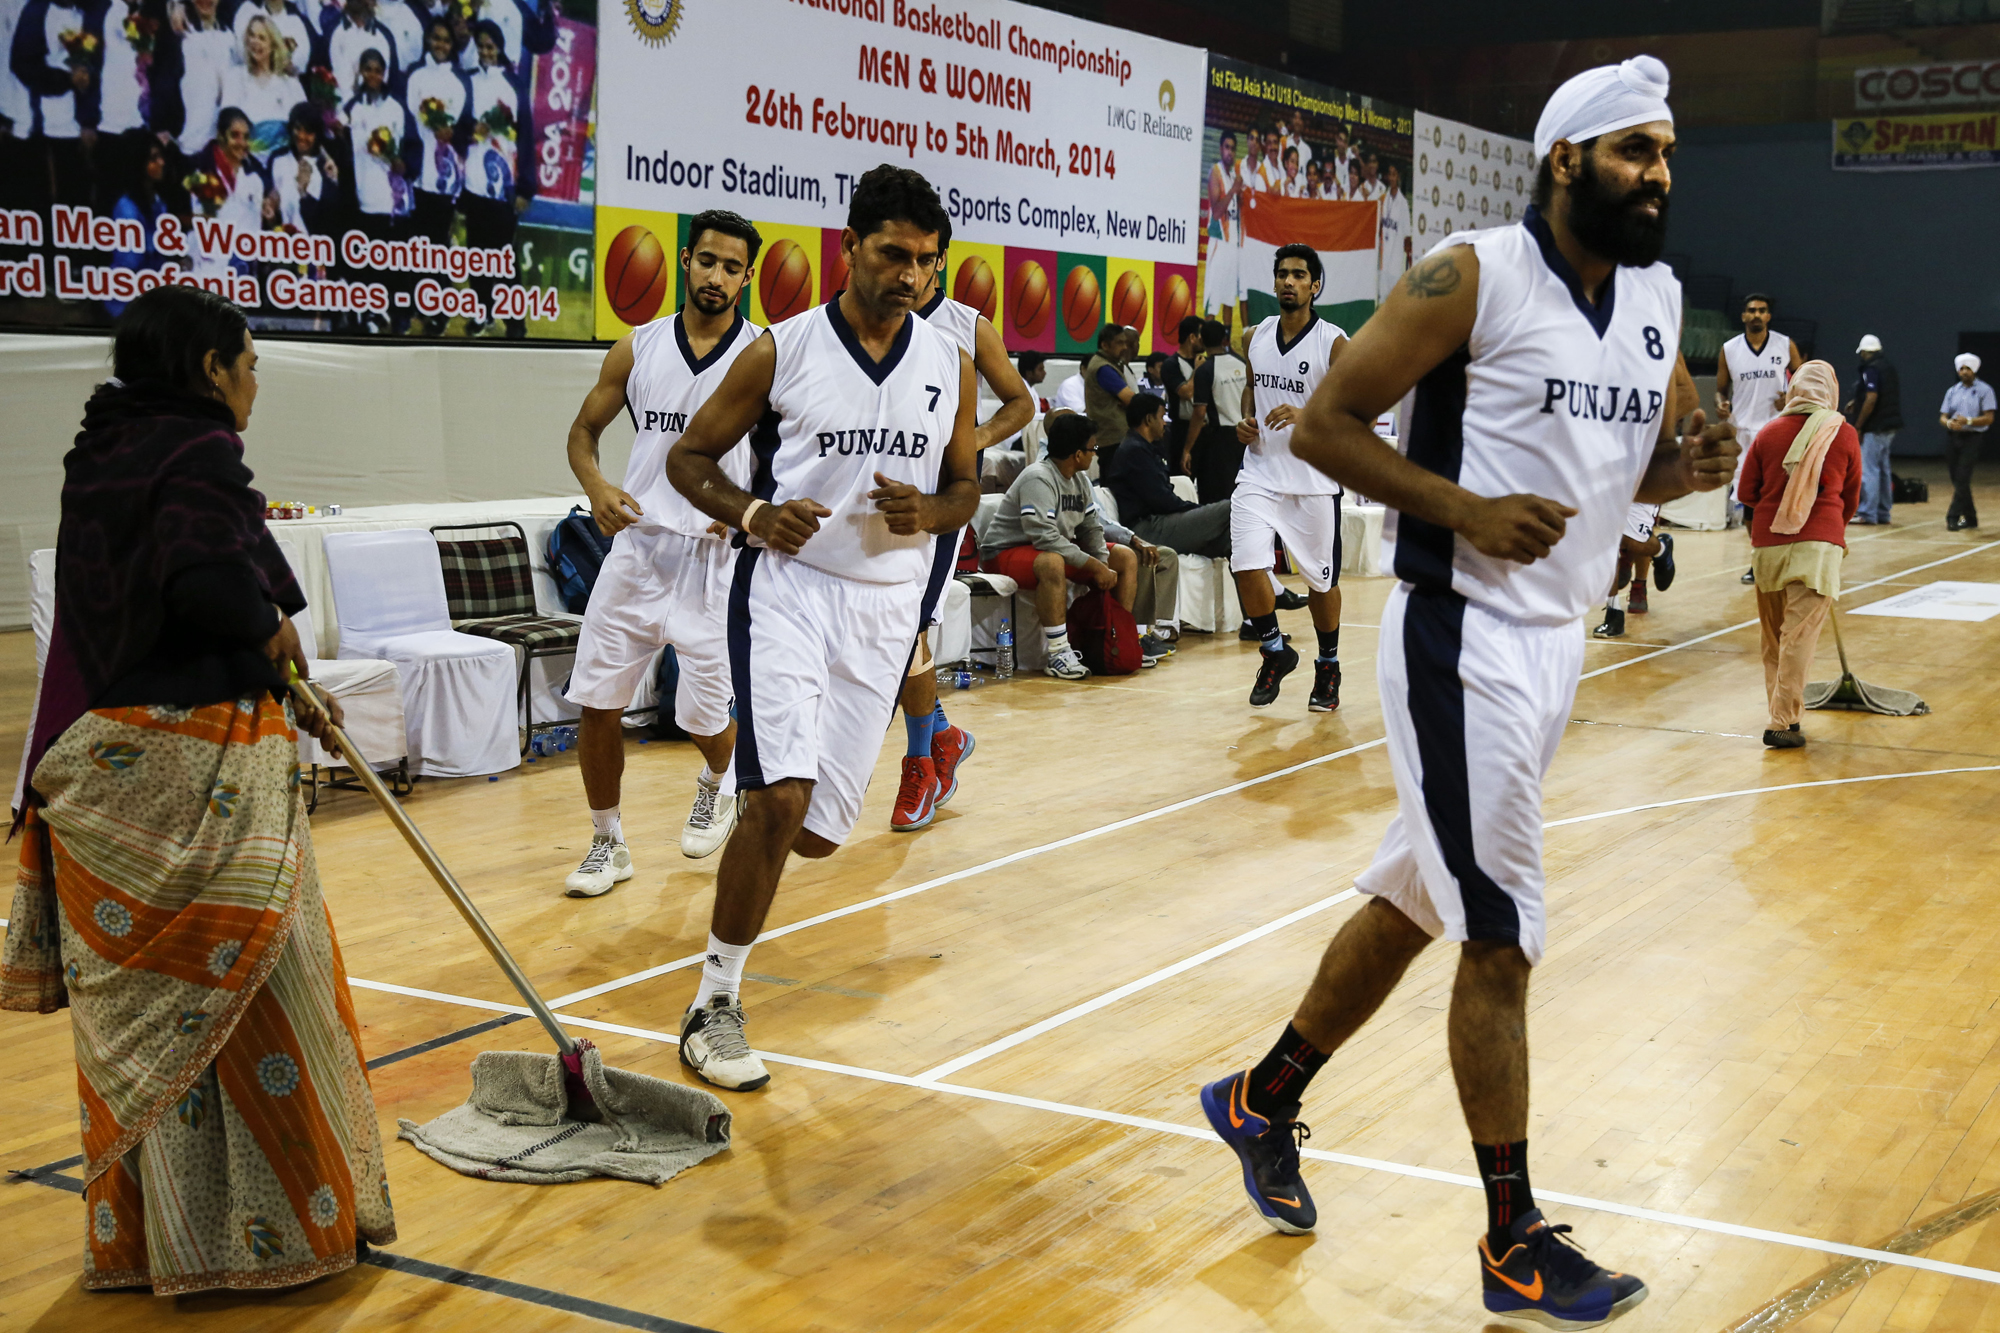 Dhillon Gur leads the Punjab team pre-game warmup up 64th Senior National Basketball Championship, Delhi, 2014